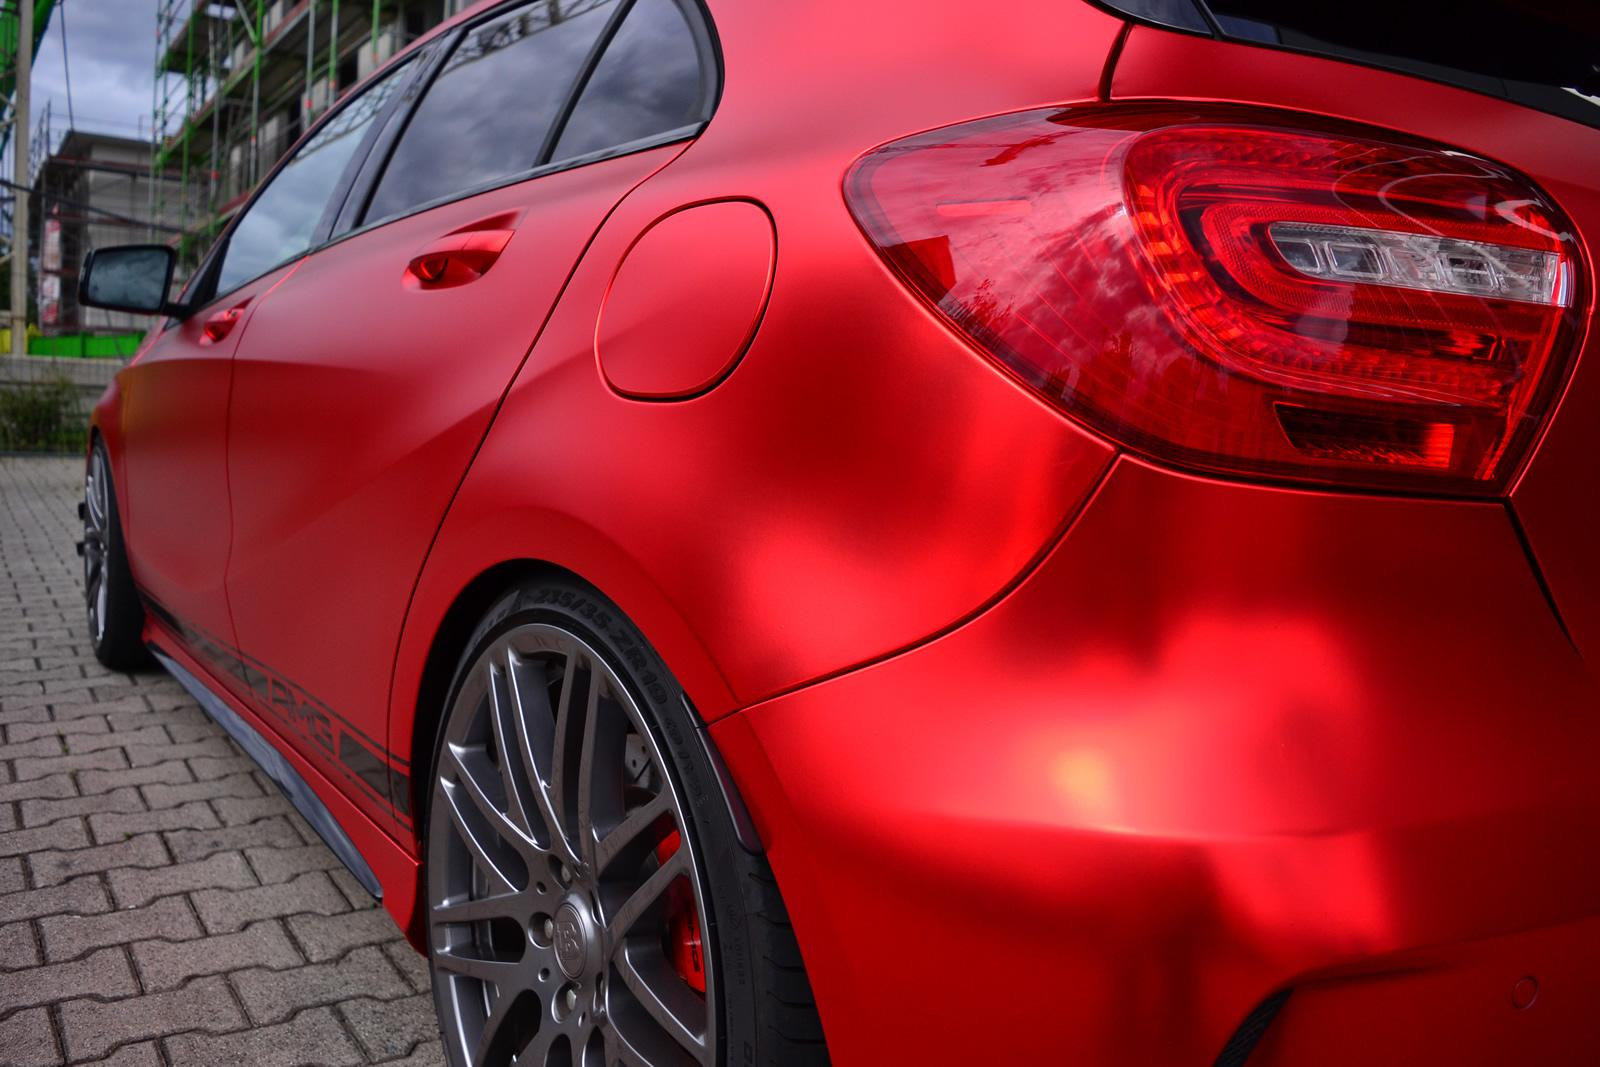 mercedes a45 amg benz matte foil folien wrapped experte wonderful gets boosted hp autoevolution carsinvasion tuning into